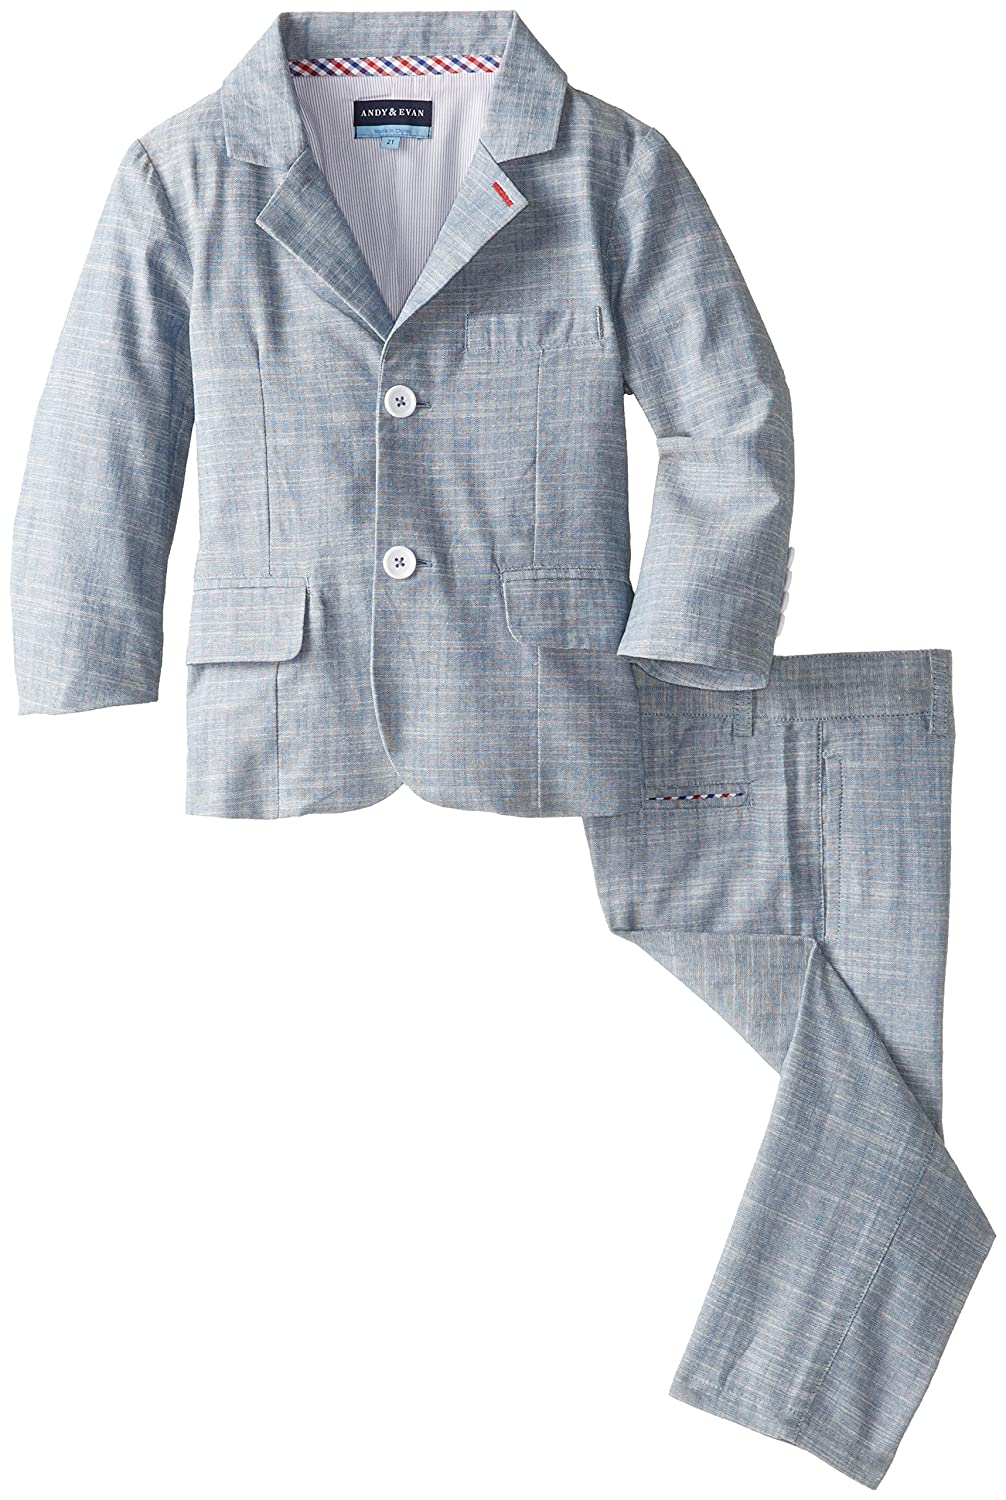 Andy /& Evan Little Boys Blue Chambray Two-Piece Suit